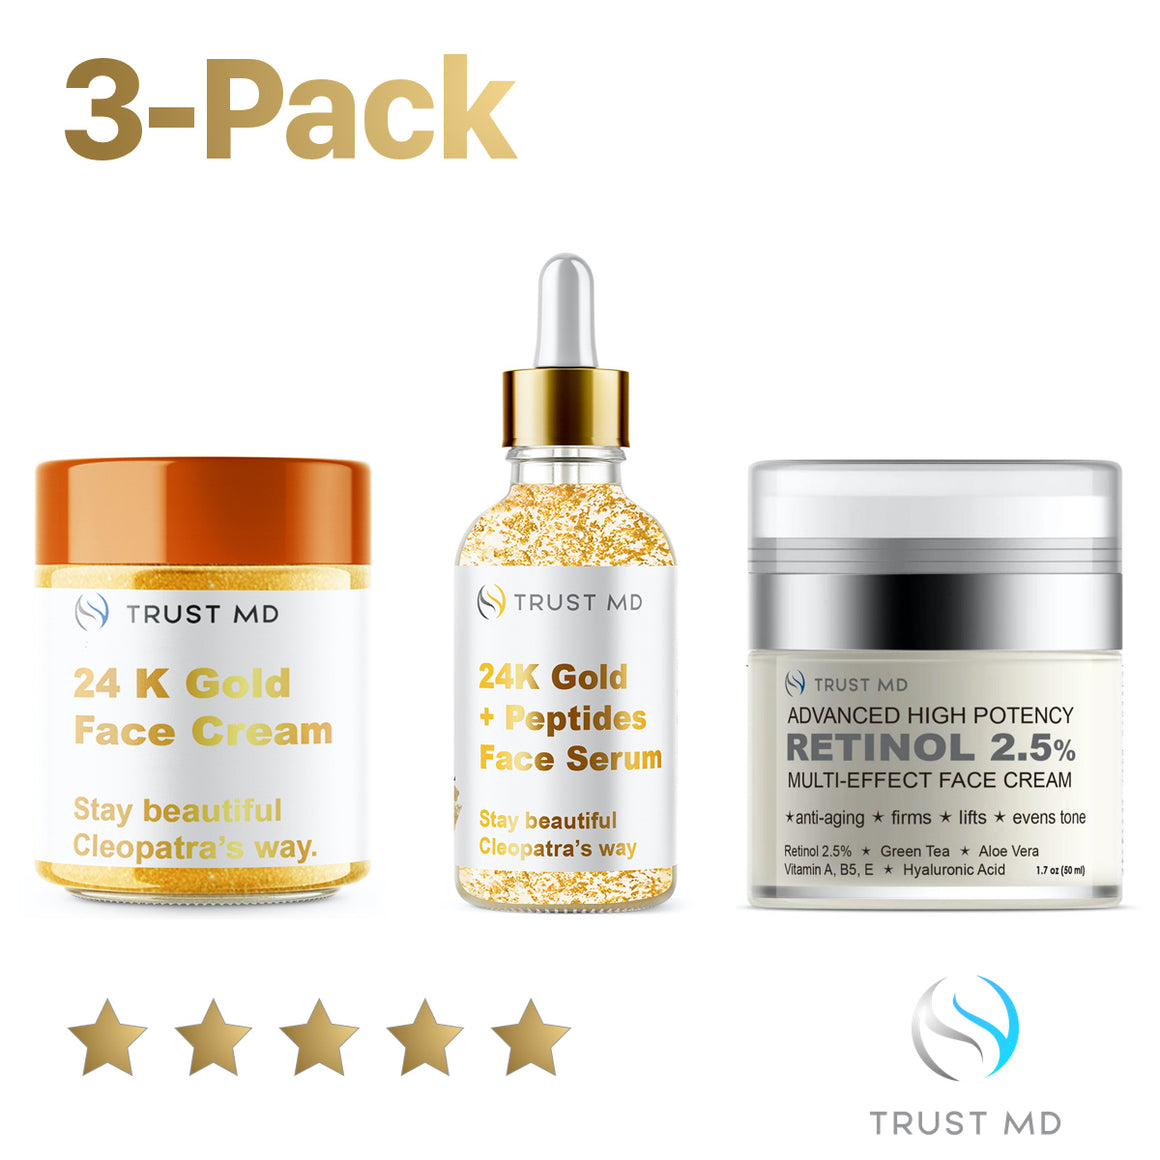 3 PACK Bundle 24K Gold and Peptide Face Serum and  24K Gold Rejuvenation Face Cream and Retinol Advanced Potency Face Cream